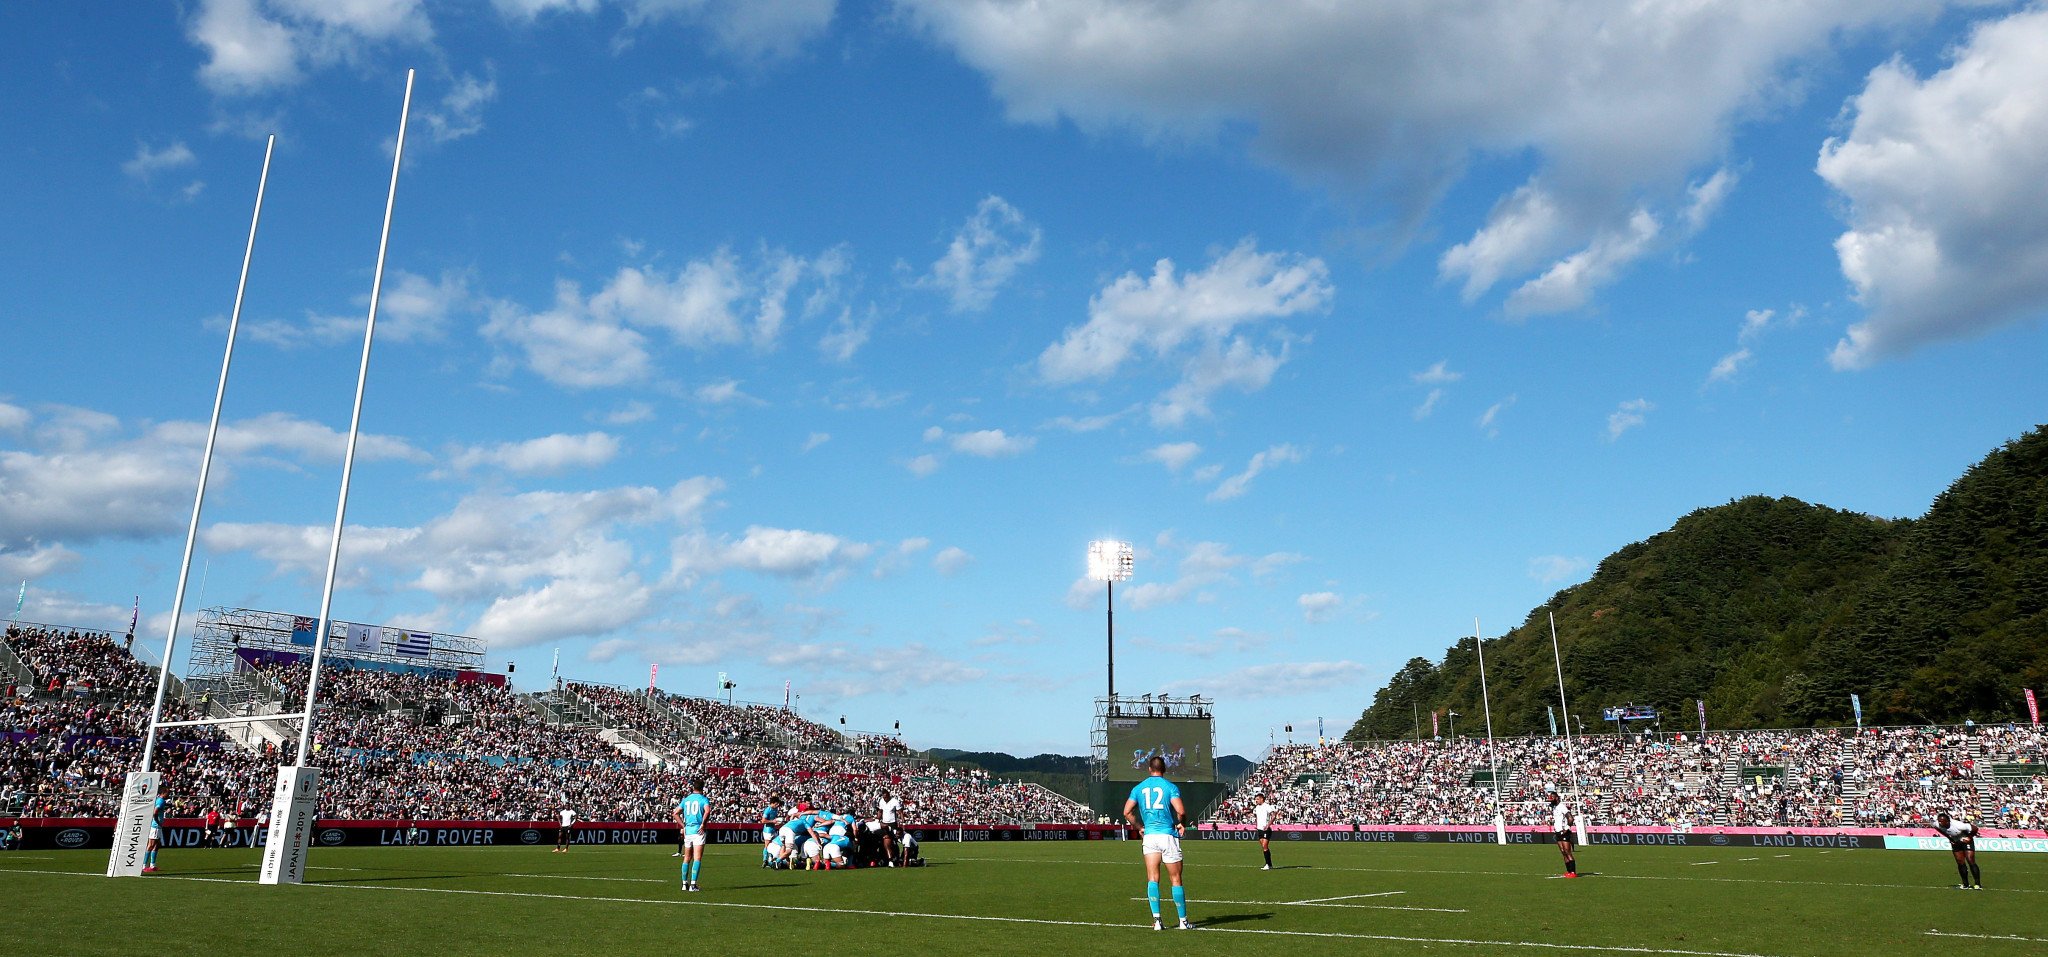 Uruguay beat Fiji in a Rugby World Cup match at Kamaishi Recovery Memorial Stadium in 2019 ©Getty Images